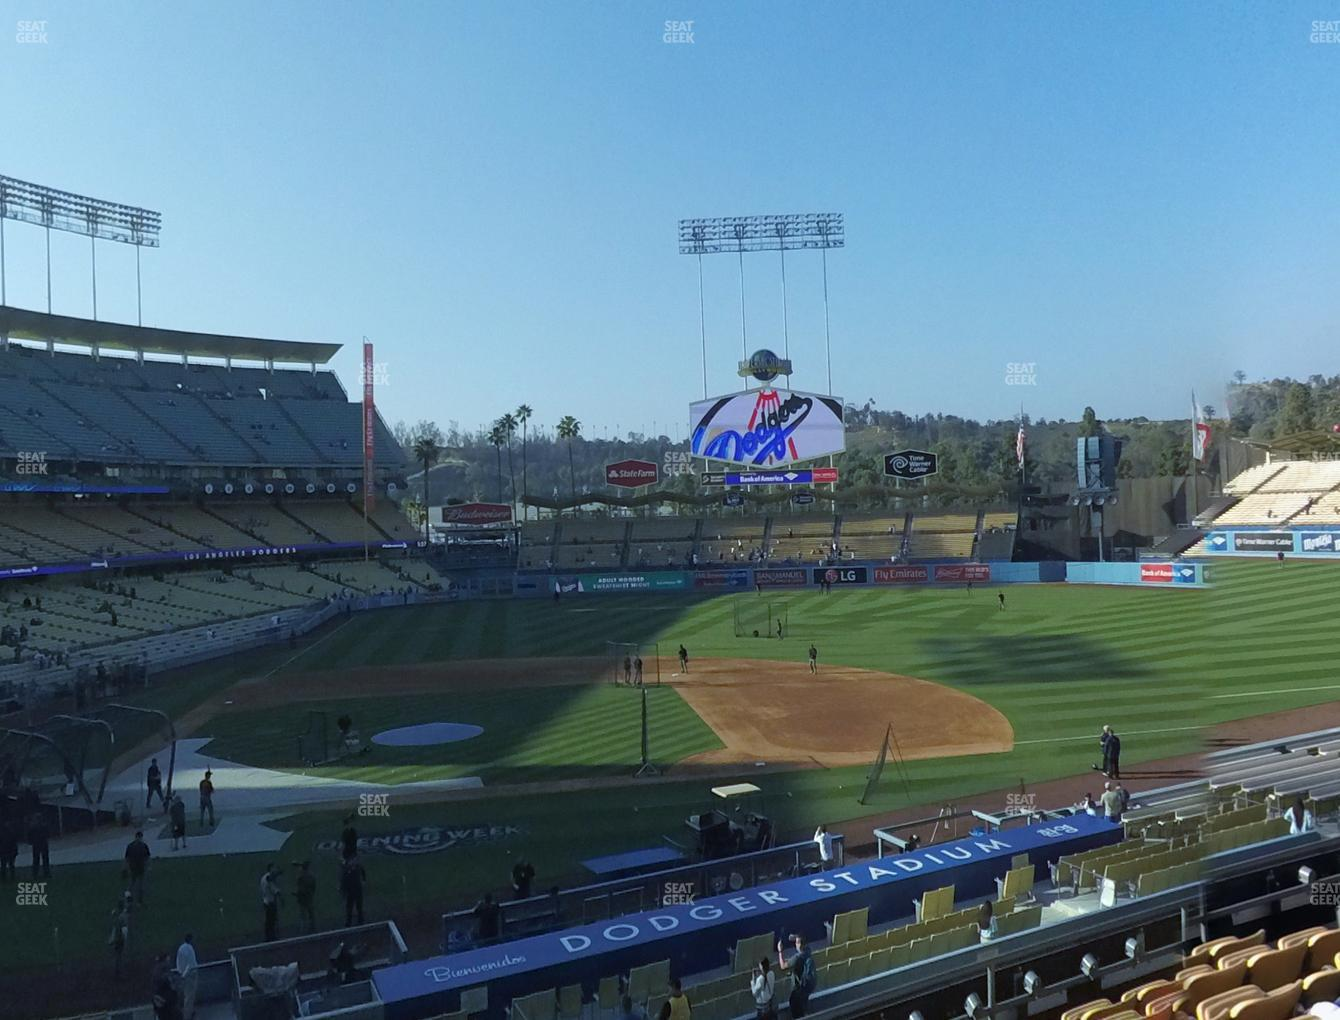 Los Angeles Dodgers at Dodger Stadium Loge Box 128 View